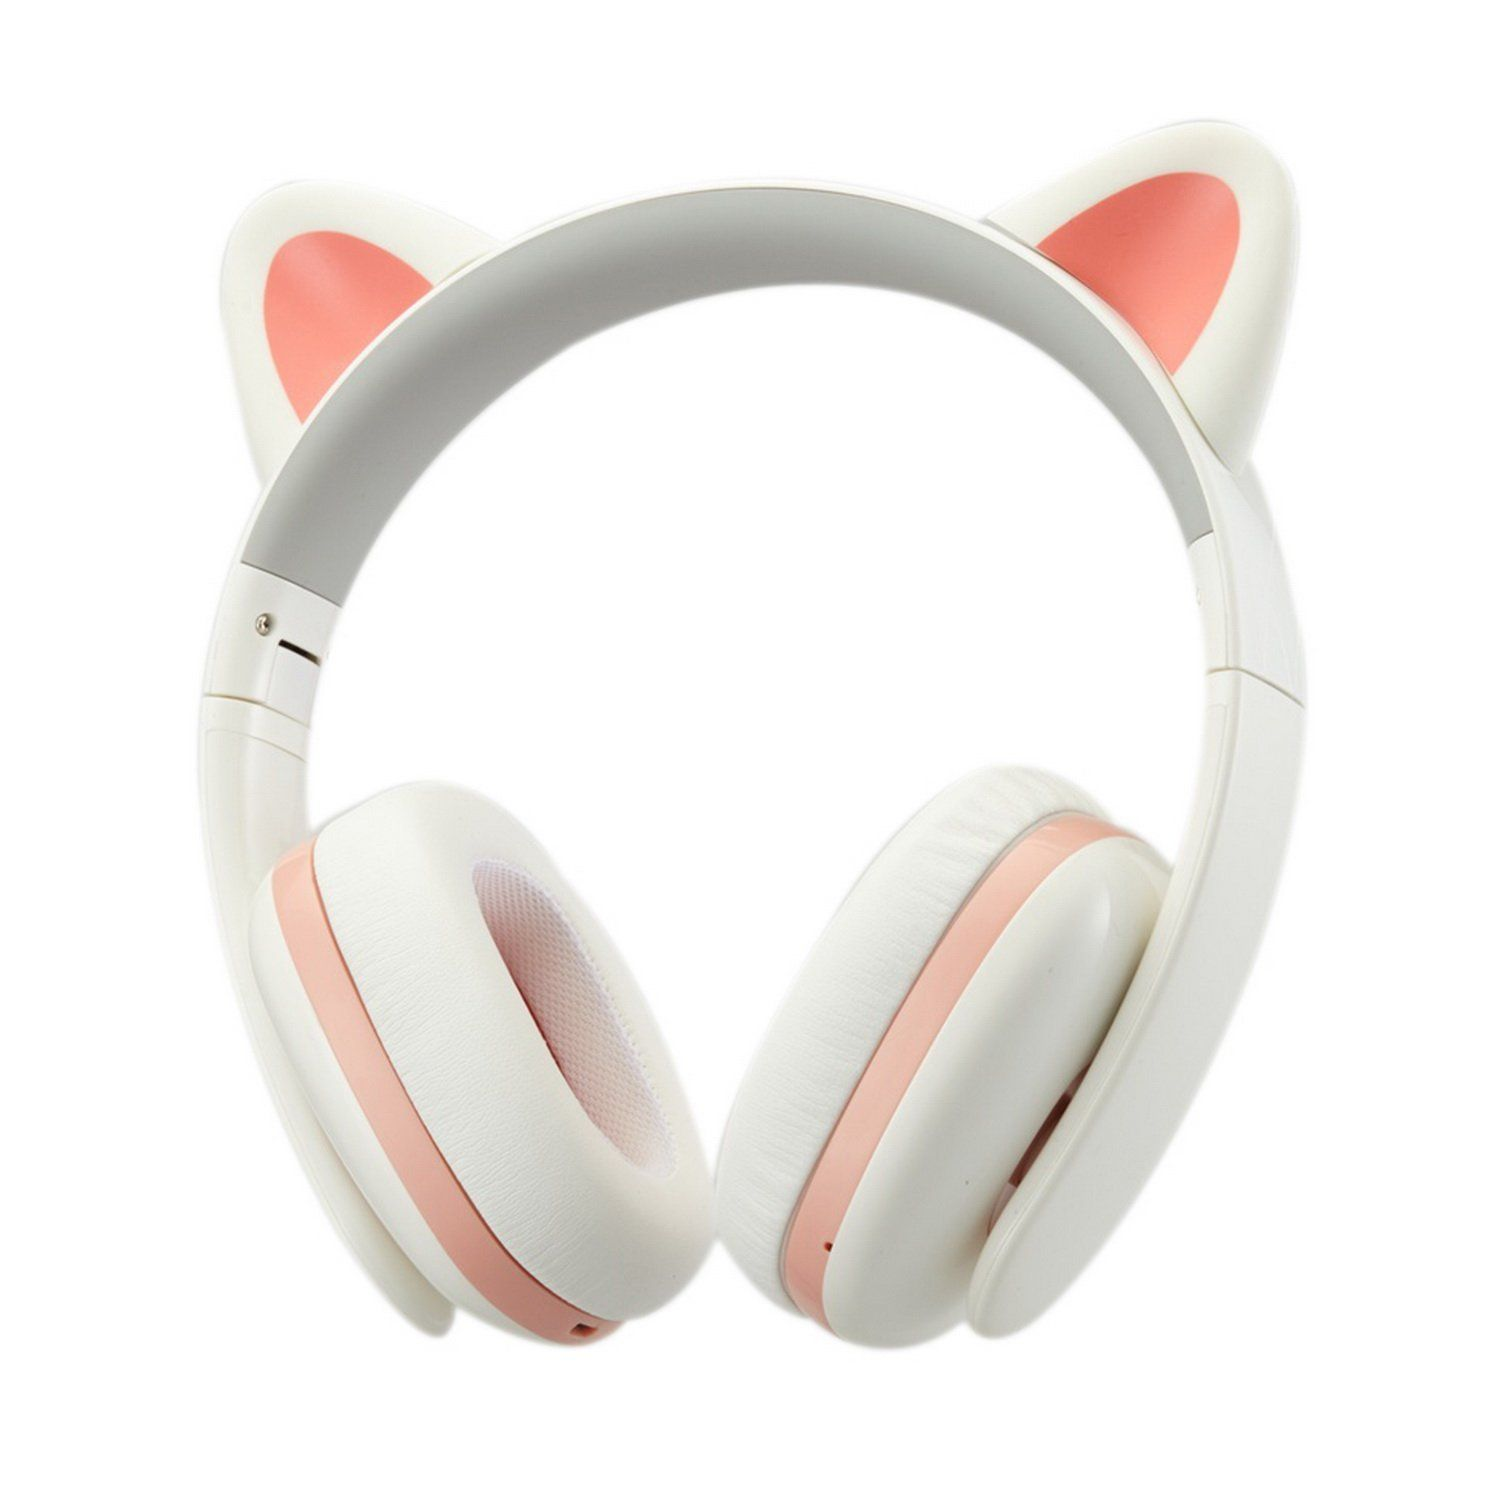 Censi Moecen Wired Cat Ear Headphones with Detachable Cat Ears (White/Pink)